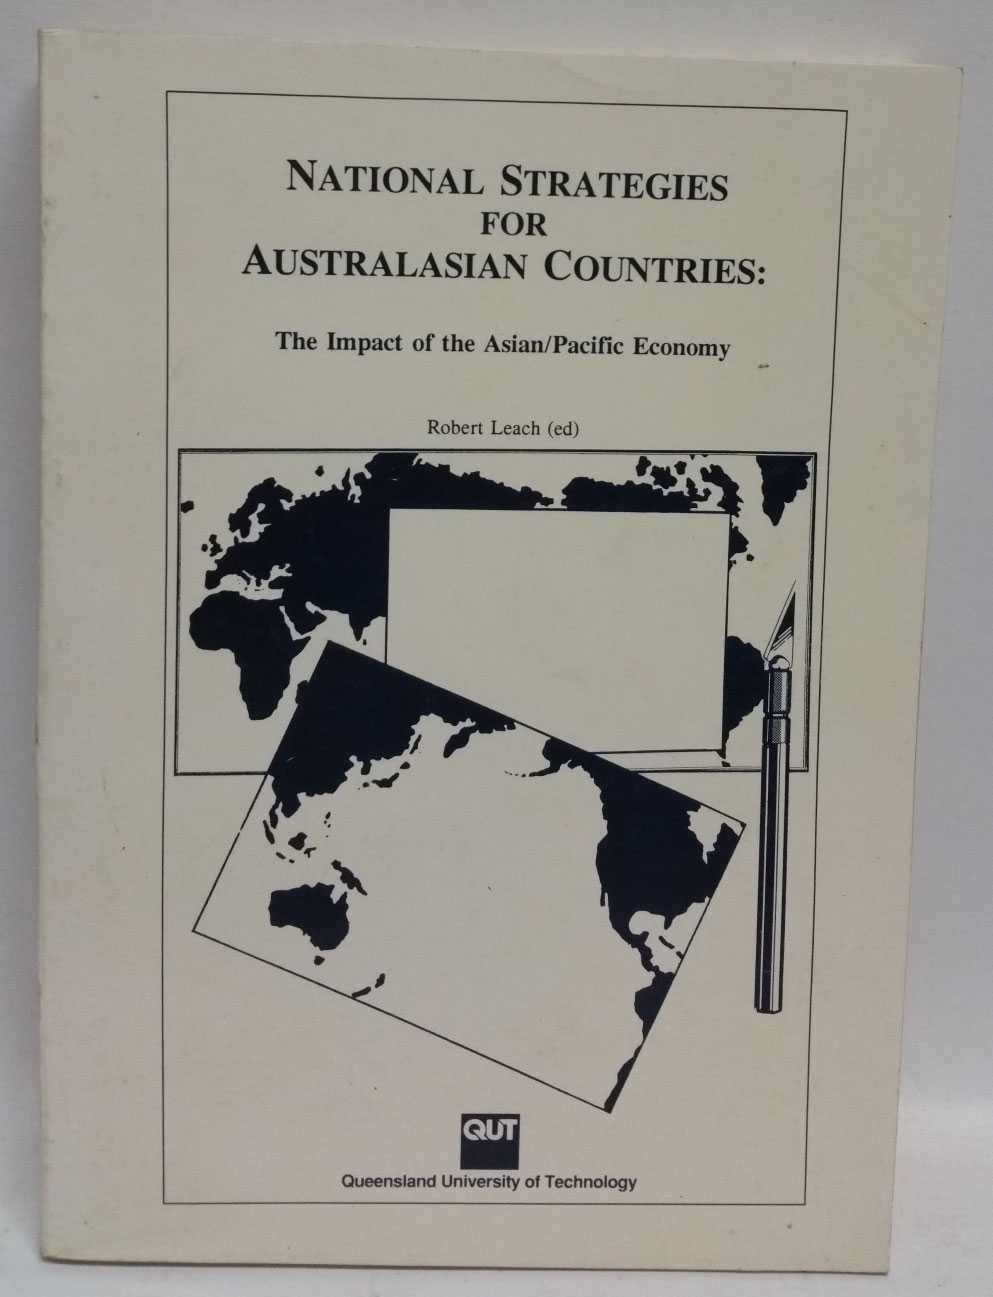 National Strategies for Australasian Countries: The Impact of the Asian/Pacific Economy, Robert Leach